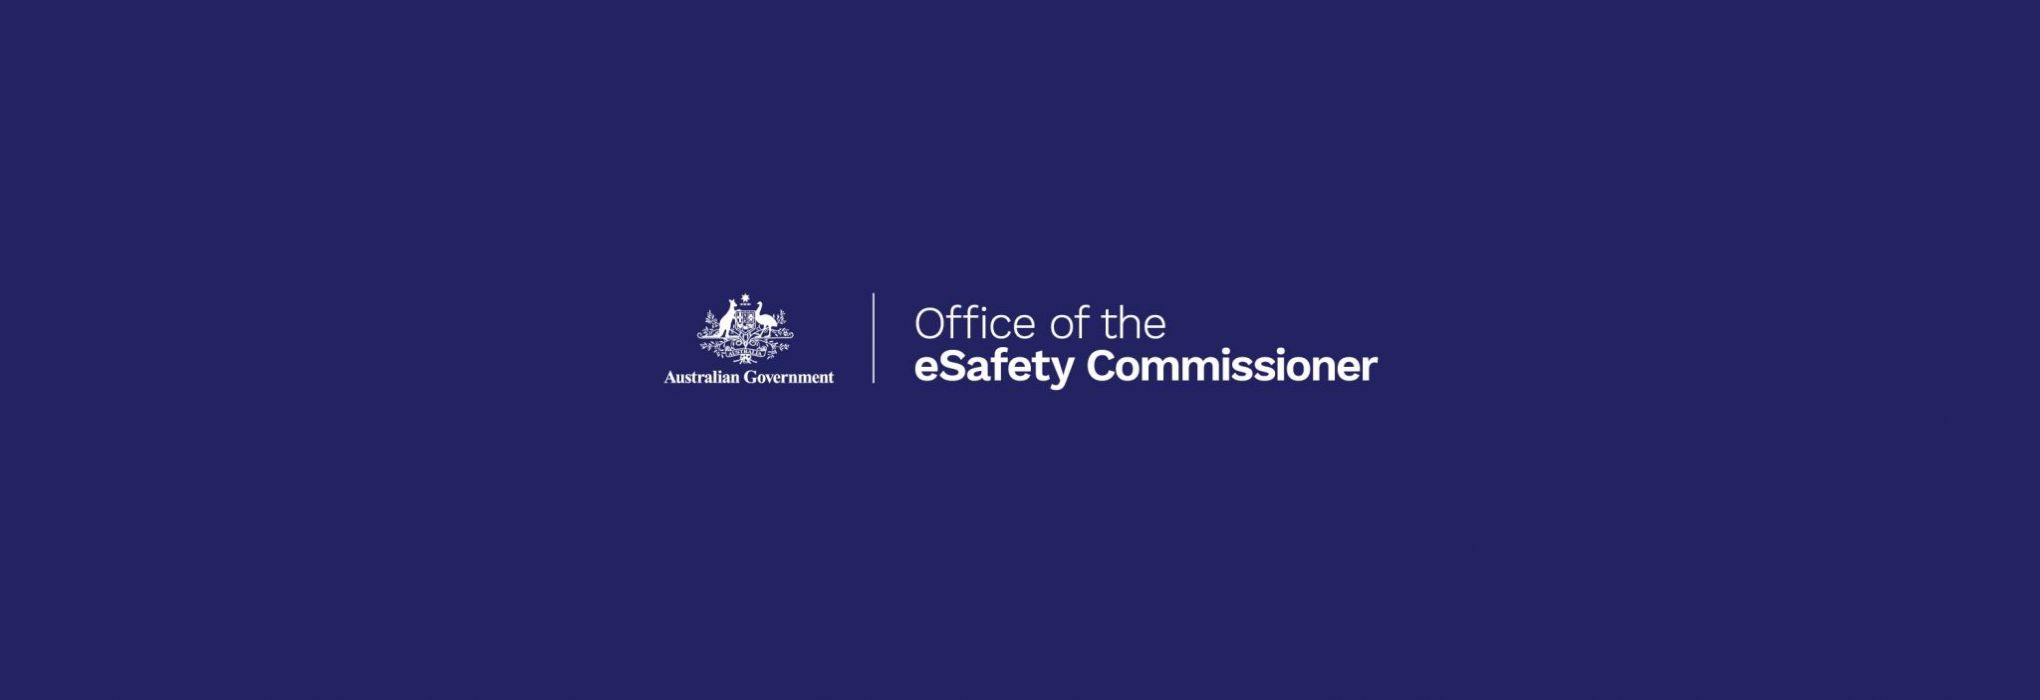 eSafety Commissioner